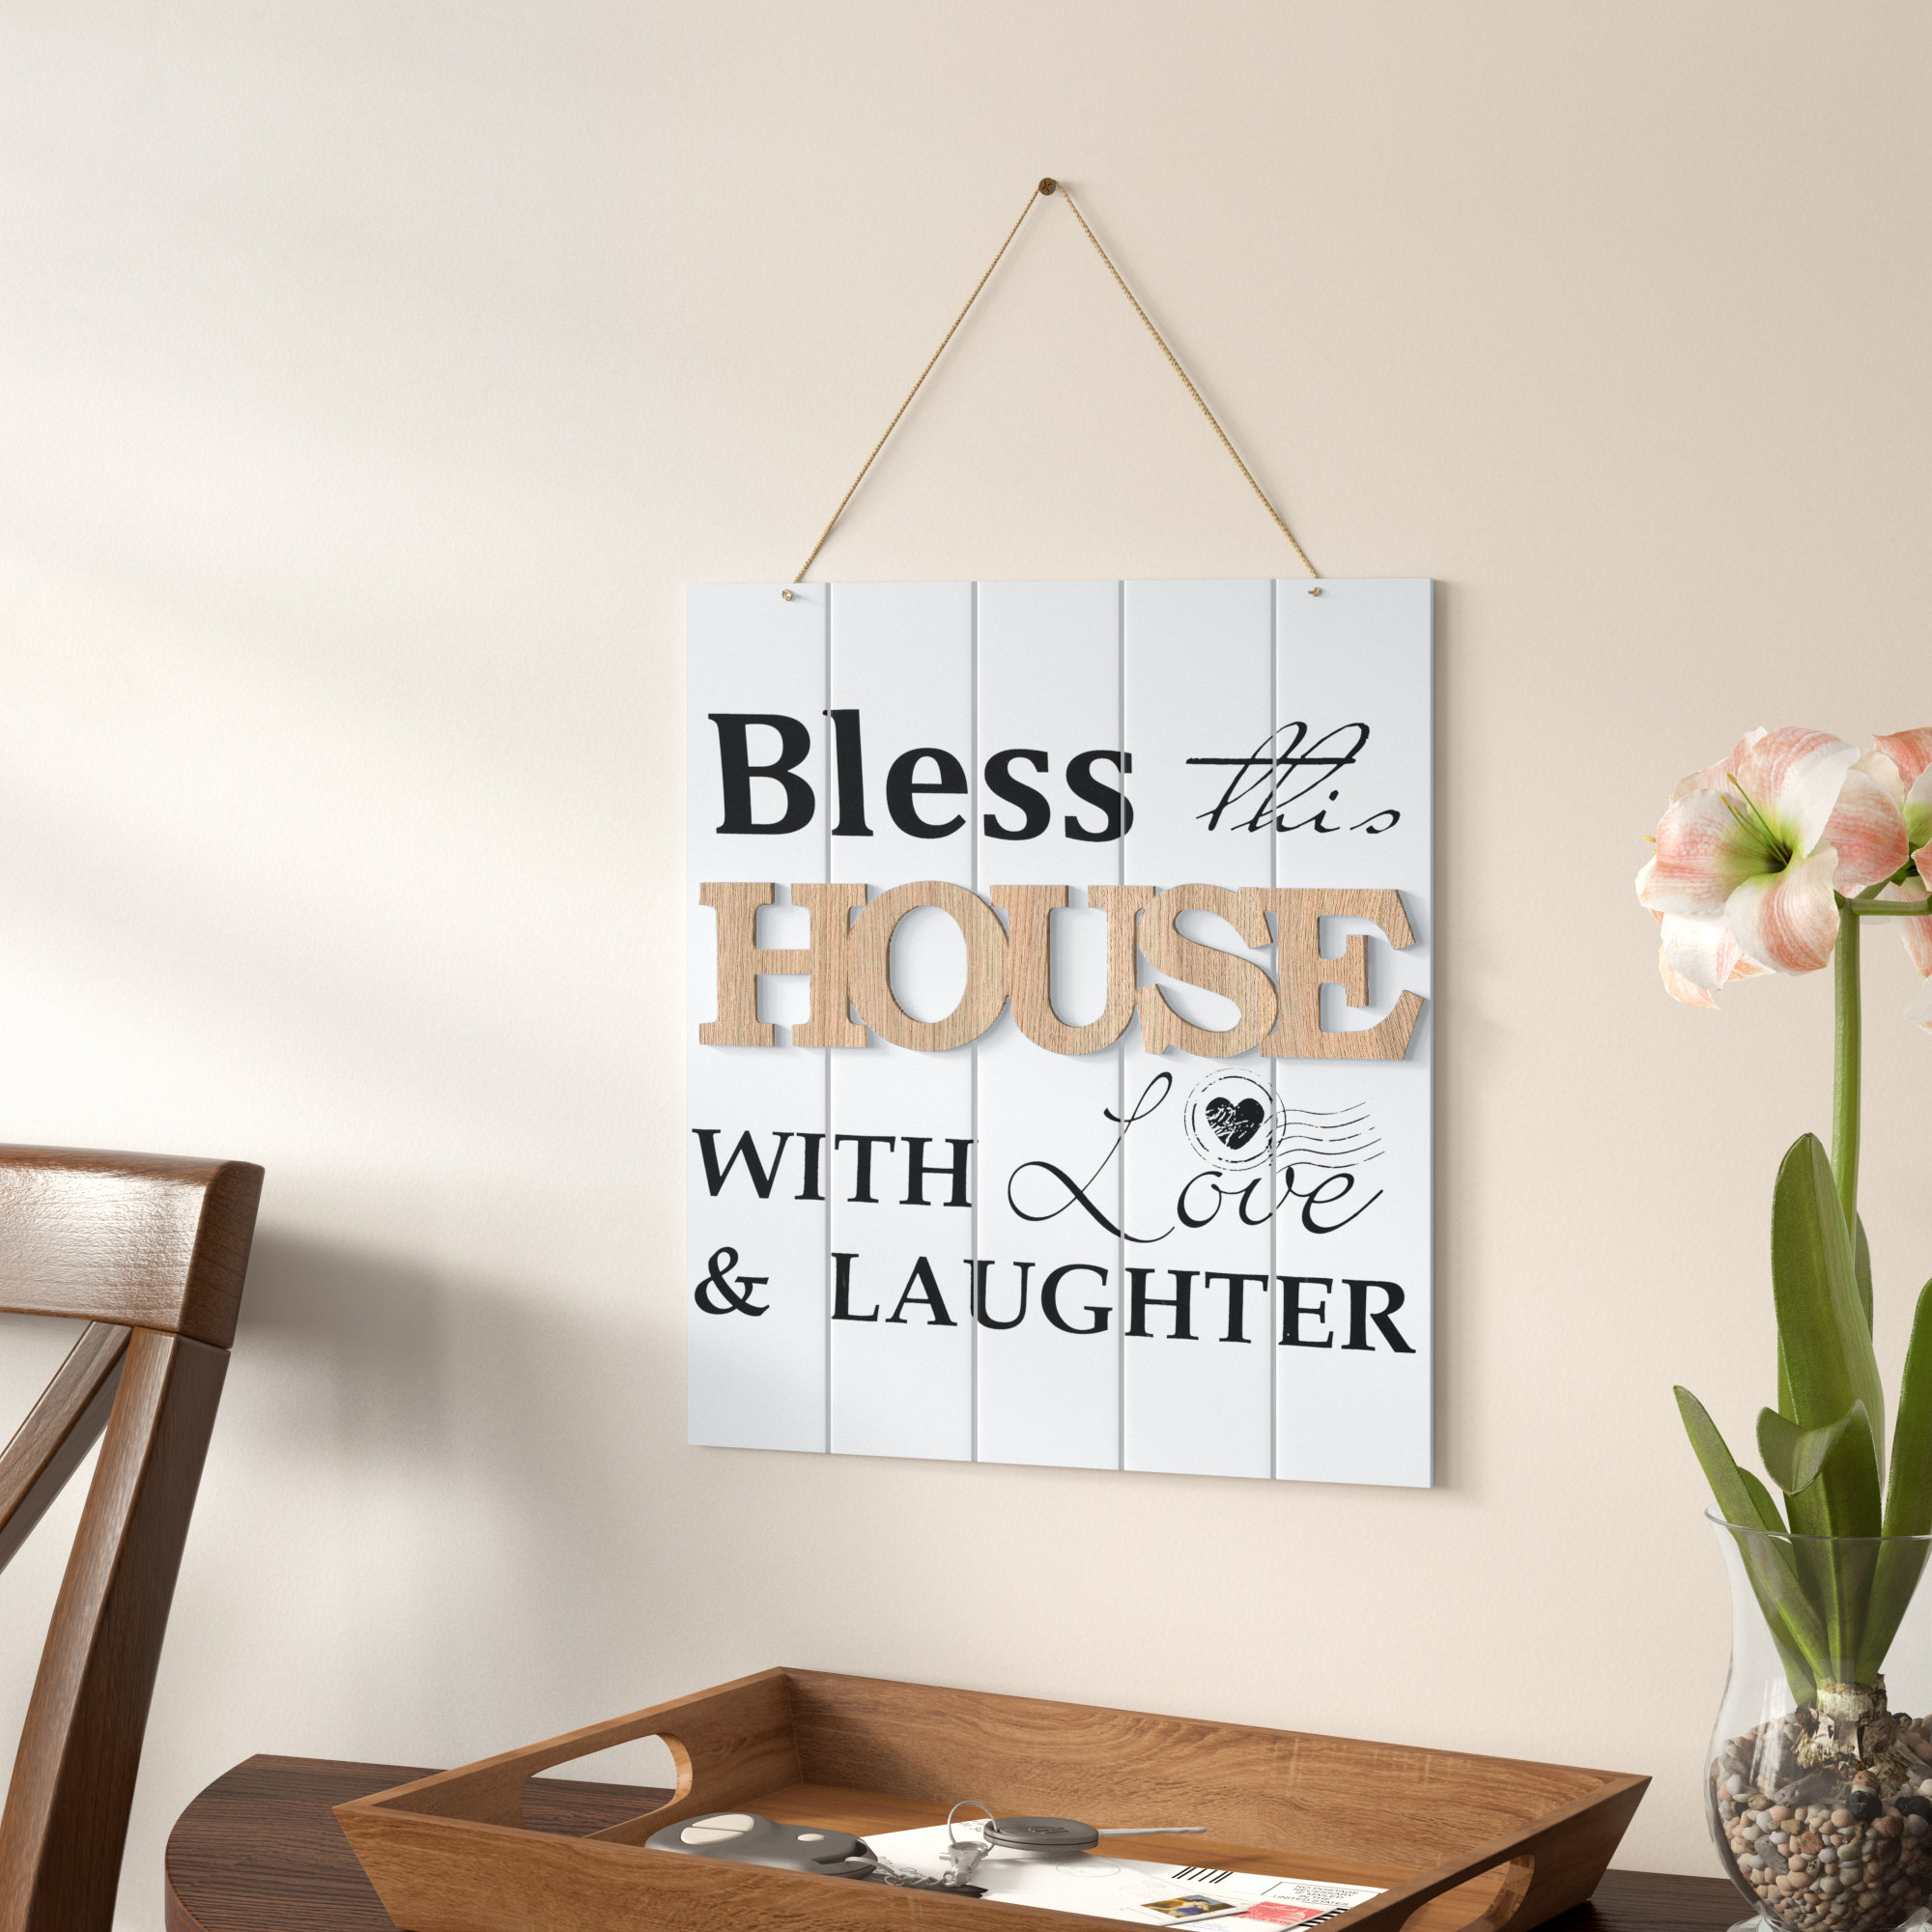 Winston Porter Bless This House With Love And Laughter Wall Decor Regarding Newest Faith, Hope, Love Raised Sign Wall Decor By Winston Porter (Gallery 8 of 20)